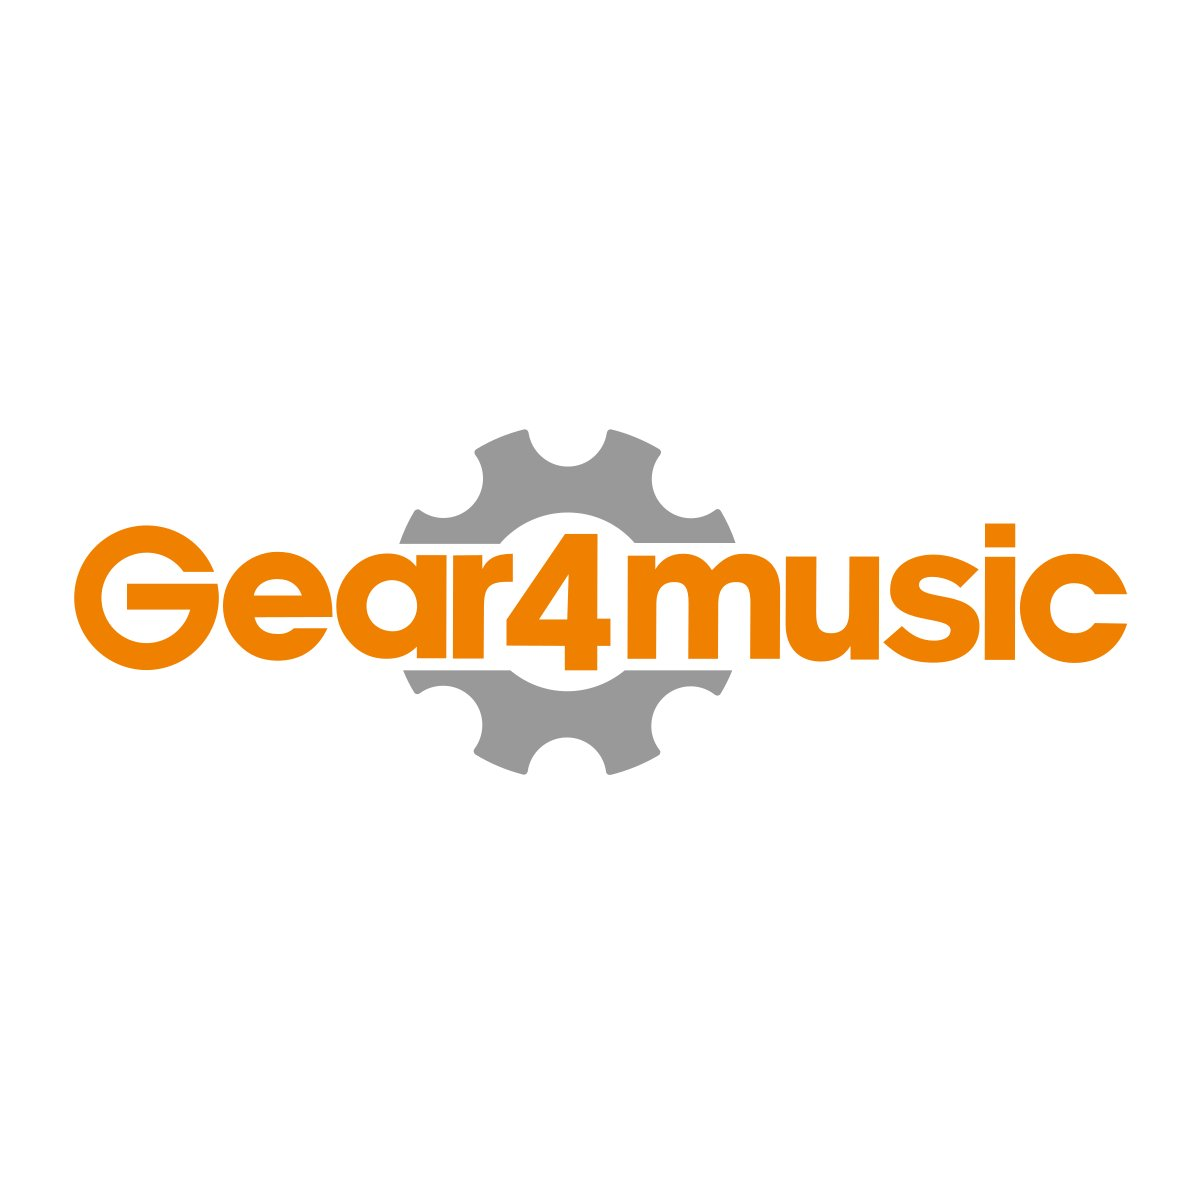 Adjustable t bar lighting stand by gear4music 220cm at gear4music adjustable lighting stand by gear4music ls 002 loading zoom aloadofball Choice Image